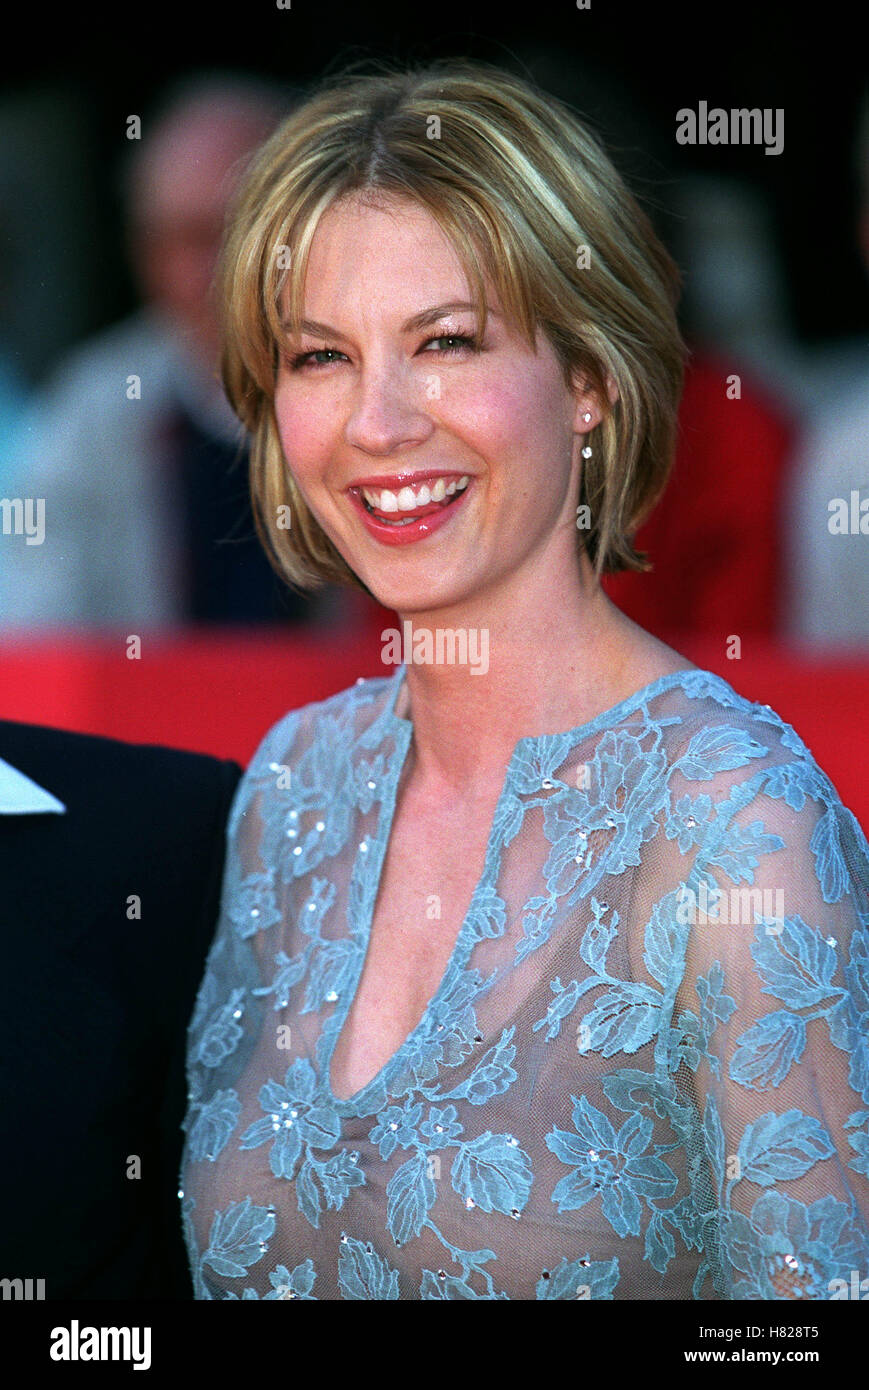 Watch Jenna Elfman video